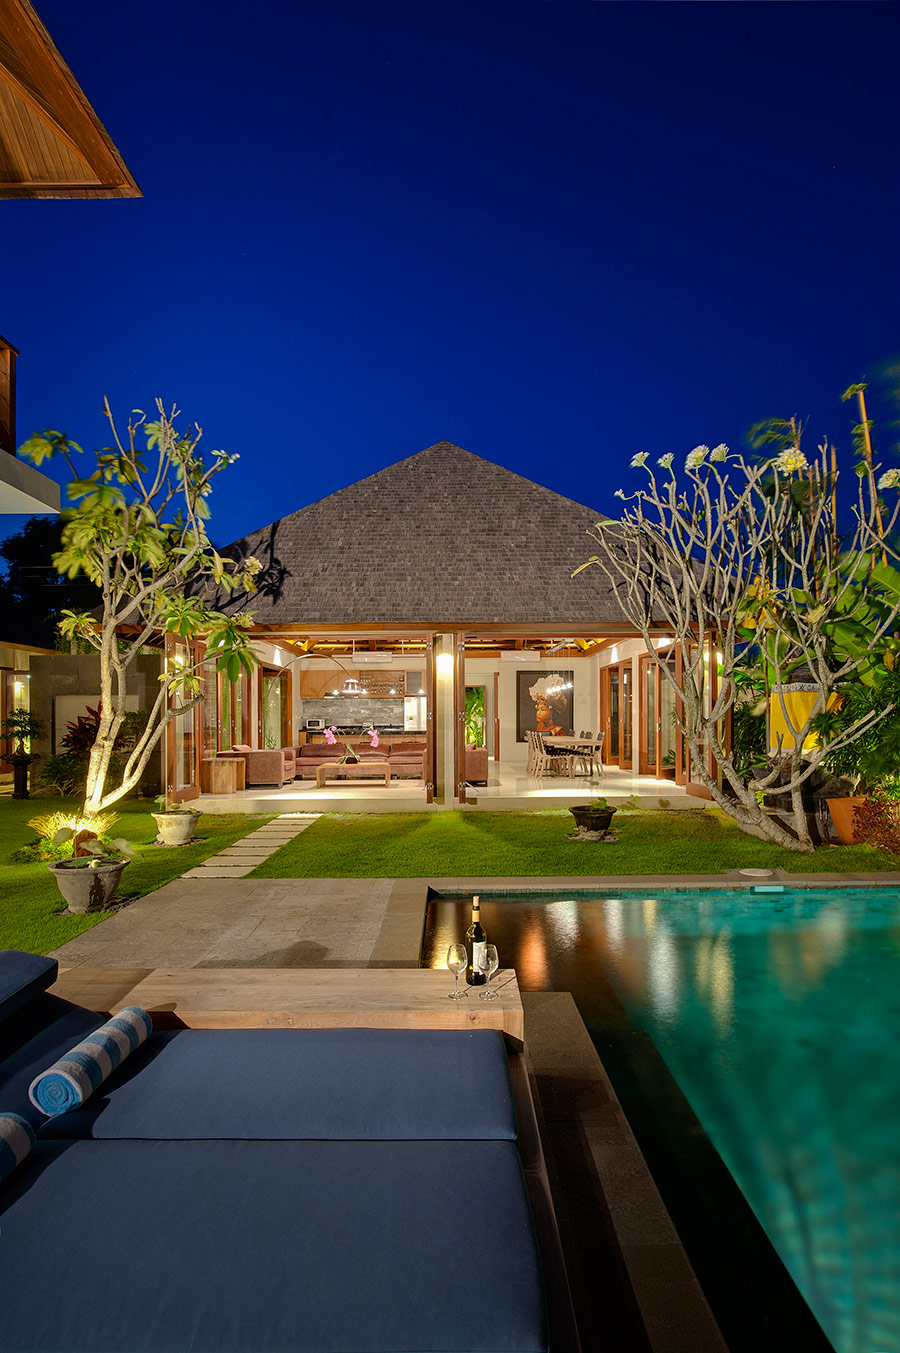 Villa-Joss-Poolside-at-night